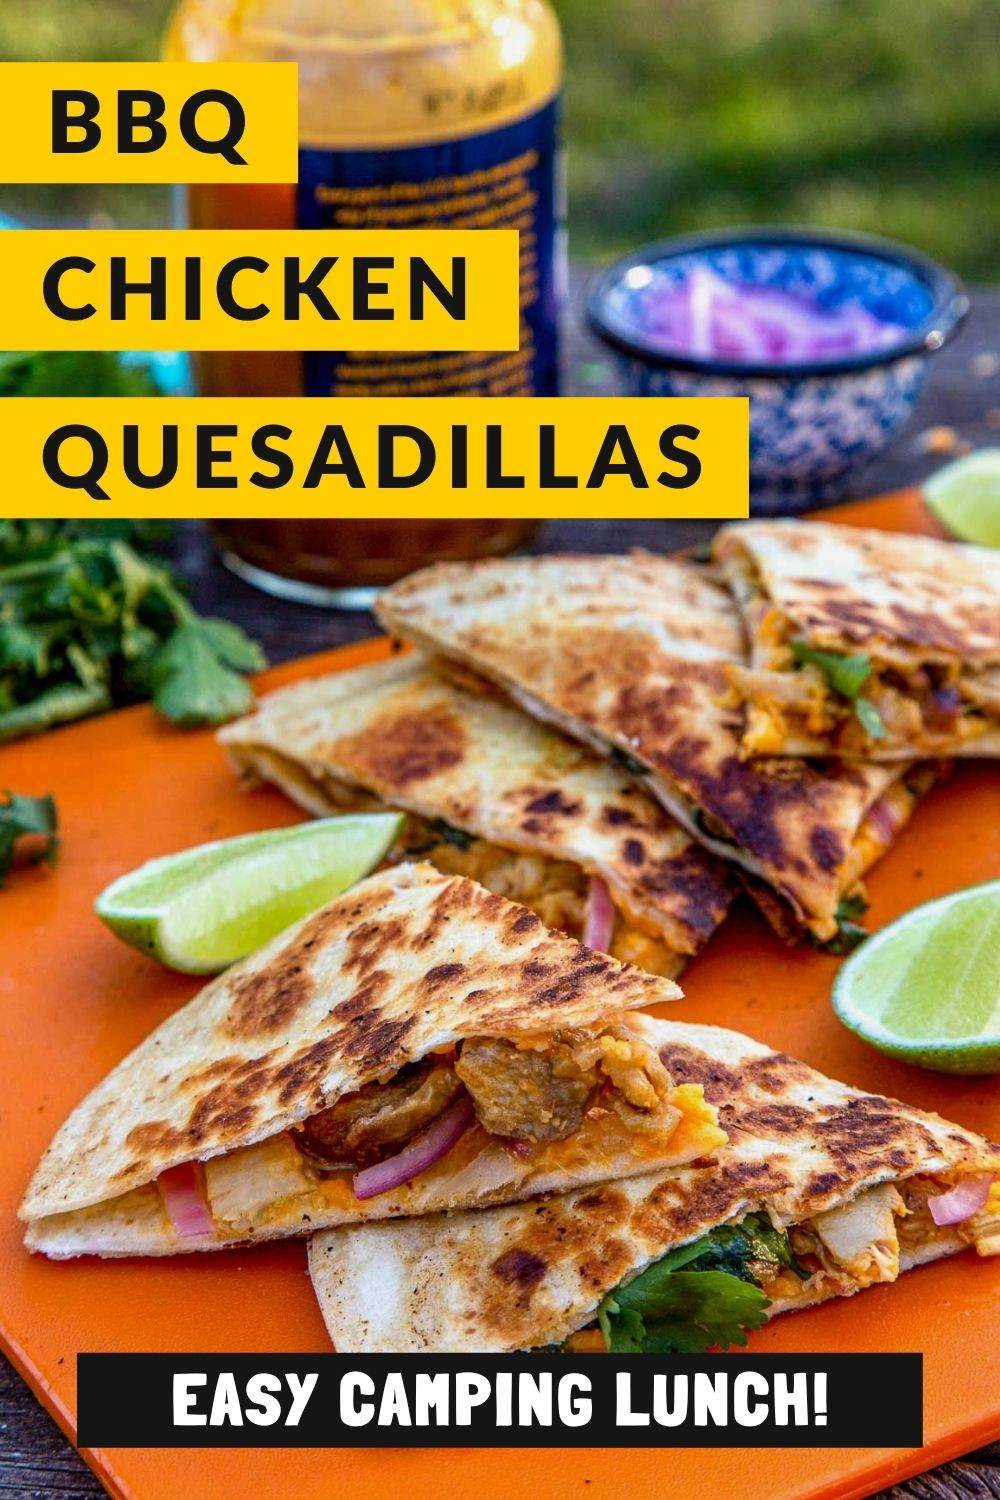 This simple BBQ Chicken Quesadilla recipe is such an easy camping lunch idea! This is a great option for kids and adults alike. Camping food   Easy camping meal via @freshoffthegrid